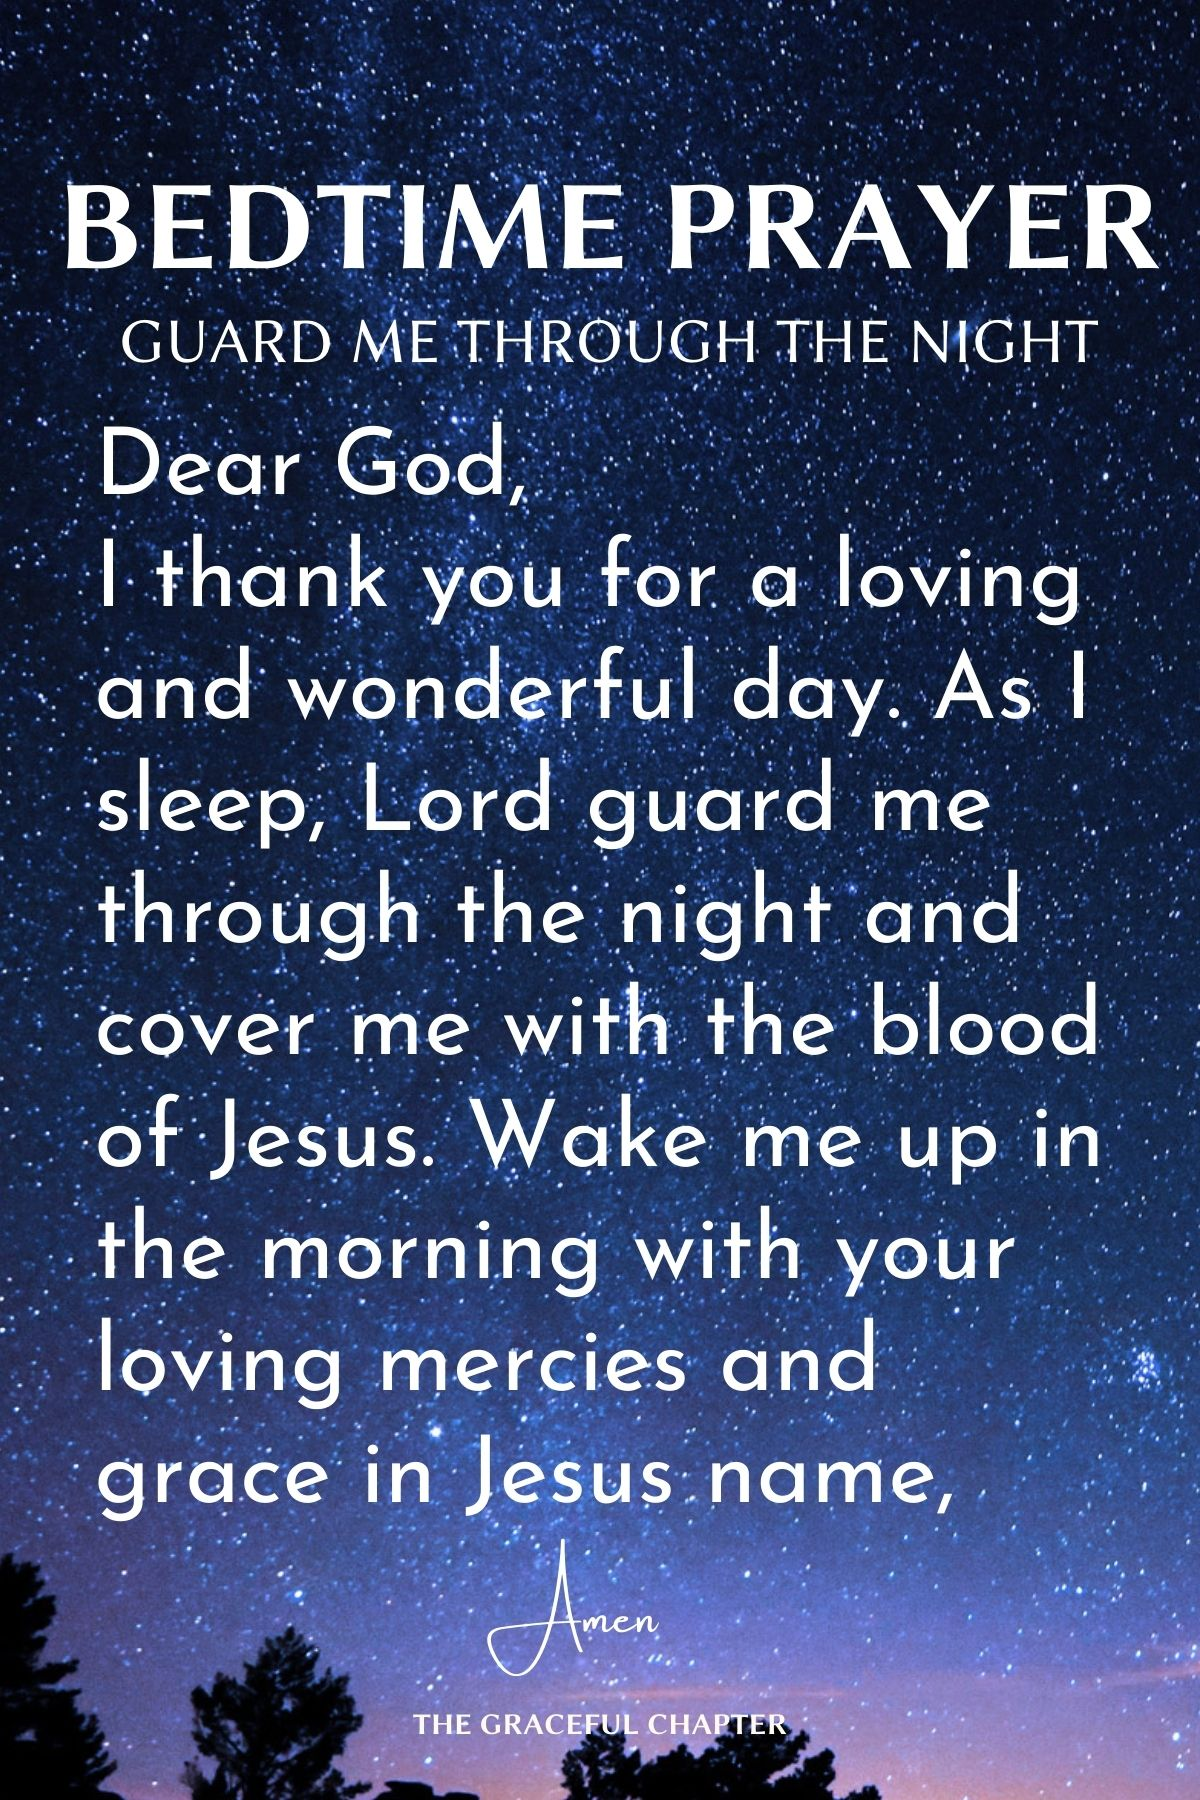 Guard me through the night